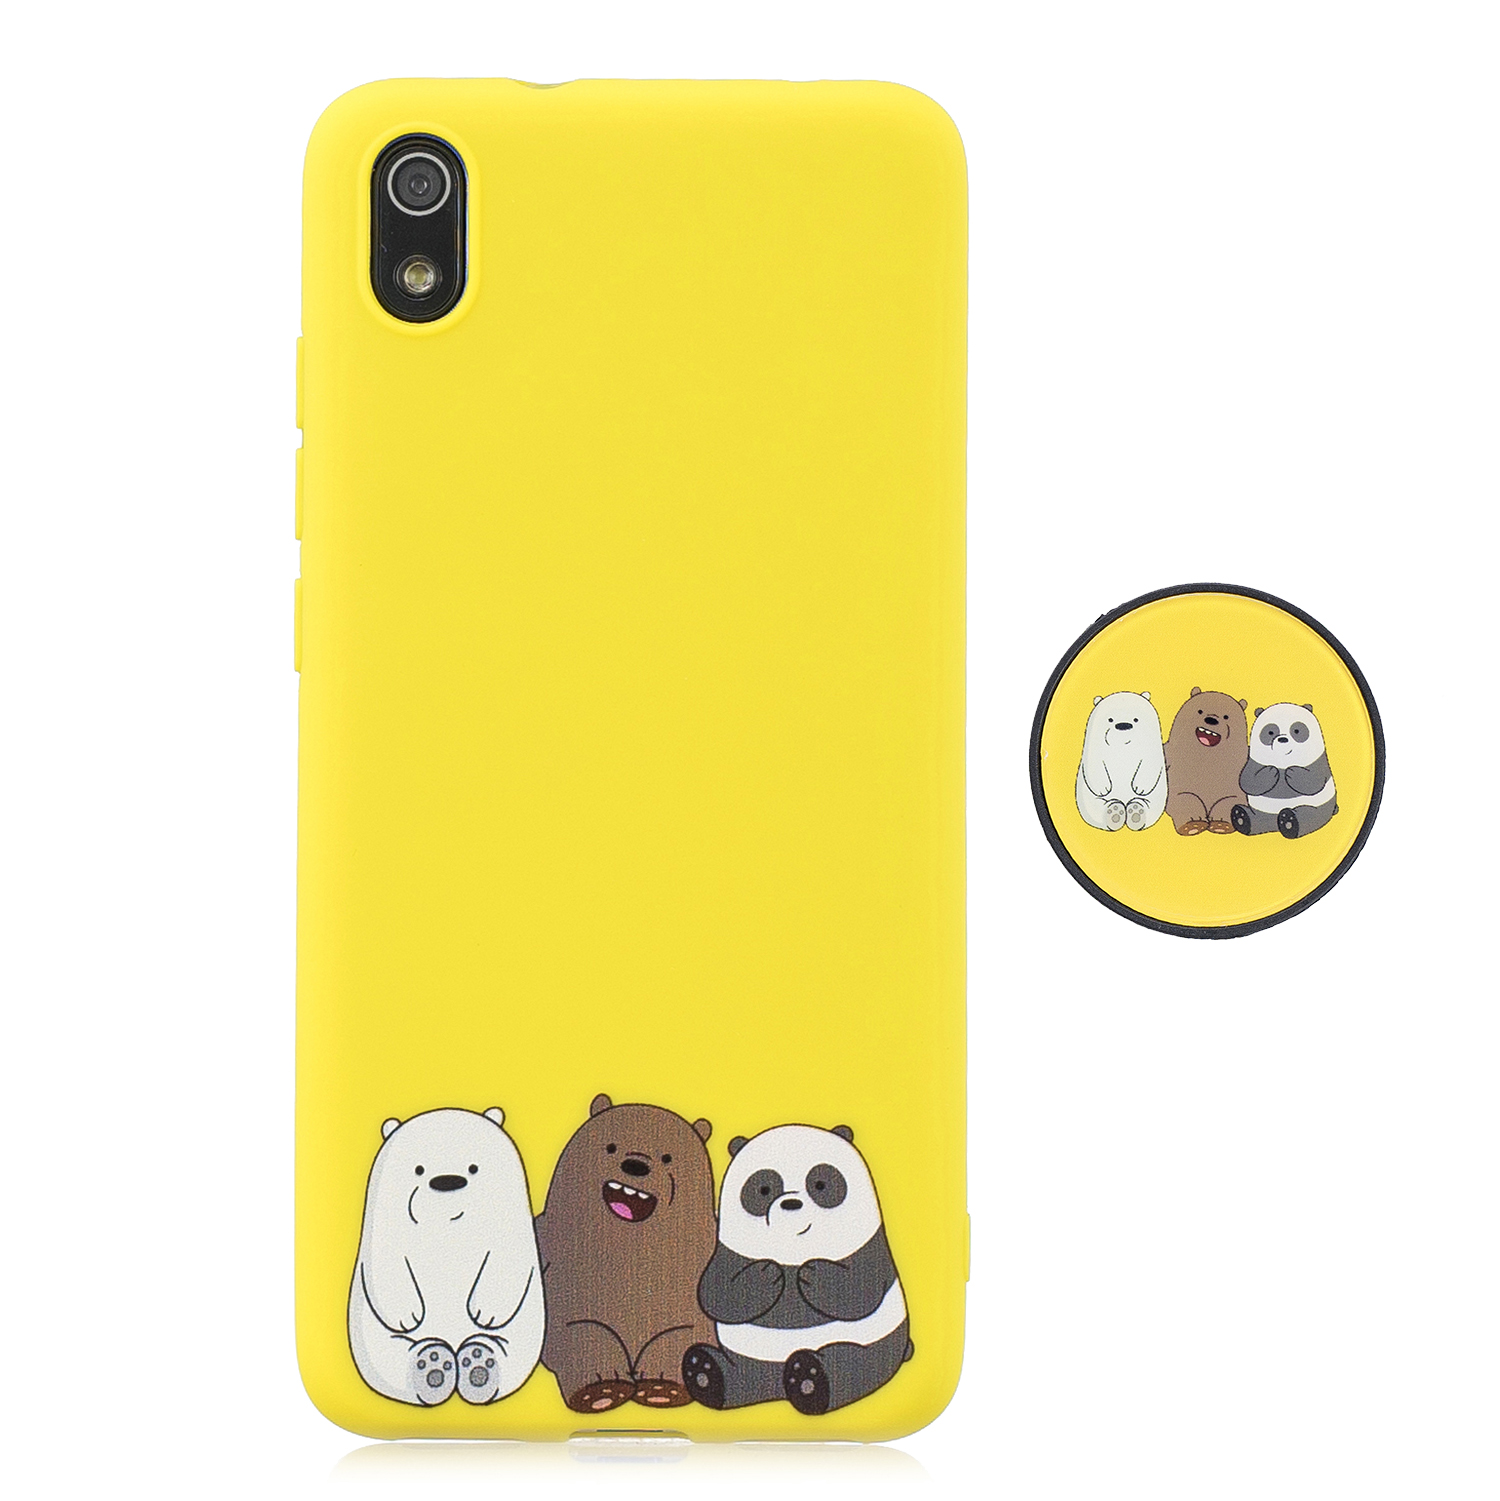 For Redmi 7A Soft TPU Full Cover Phone Case Protector Back Cover Phone Case with Matched Pattern Adjustable Bracket 7